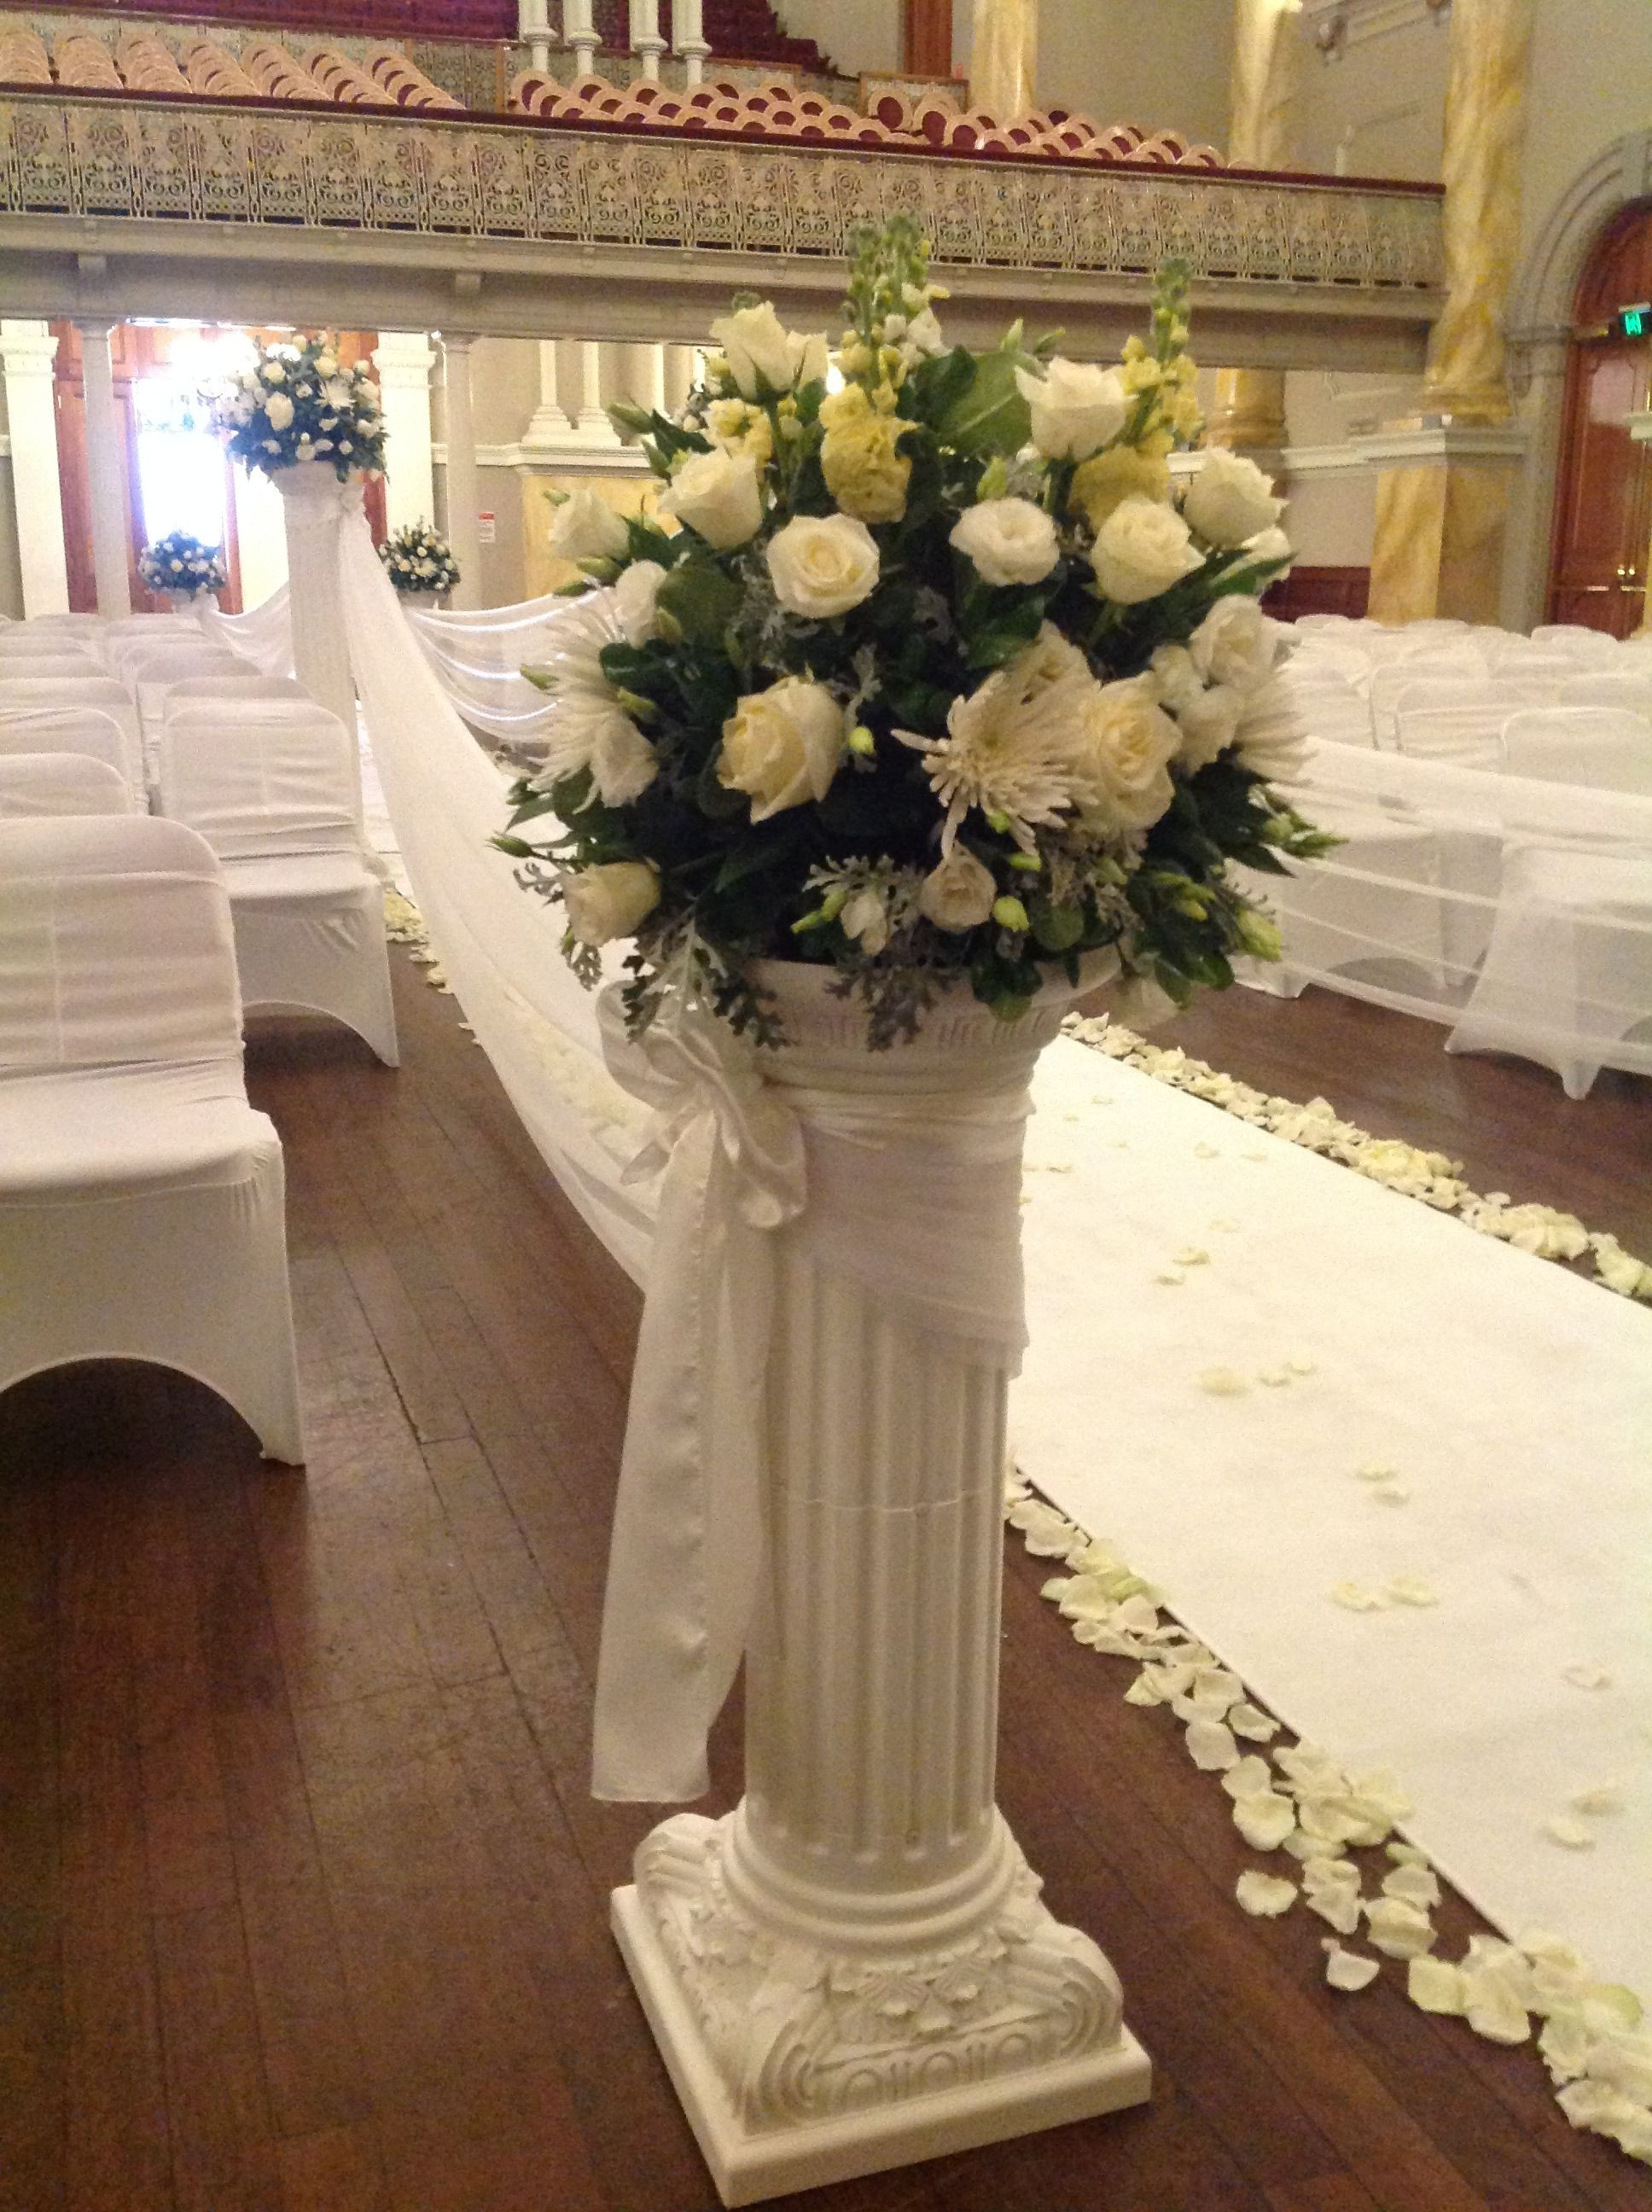 flower vases wholesale los angeles of discount wedding decorations online luxury home decor vases valid in discount wedding decorations online new flower arrangement on pillar column for wedding ceremony at adelaide of